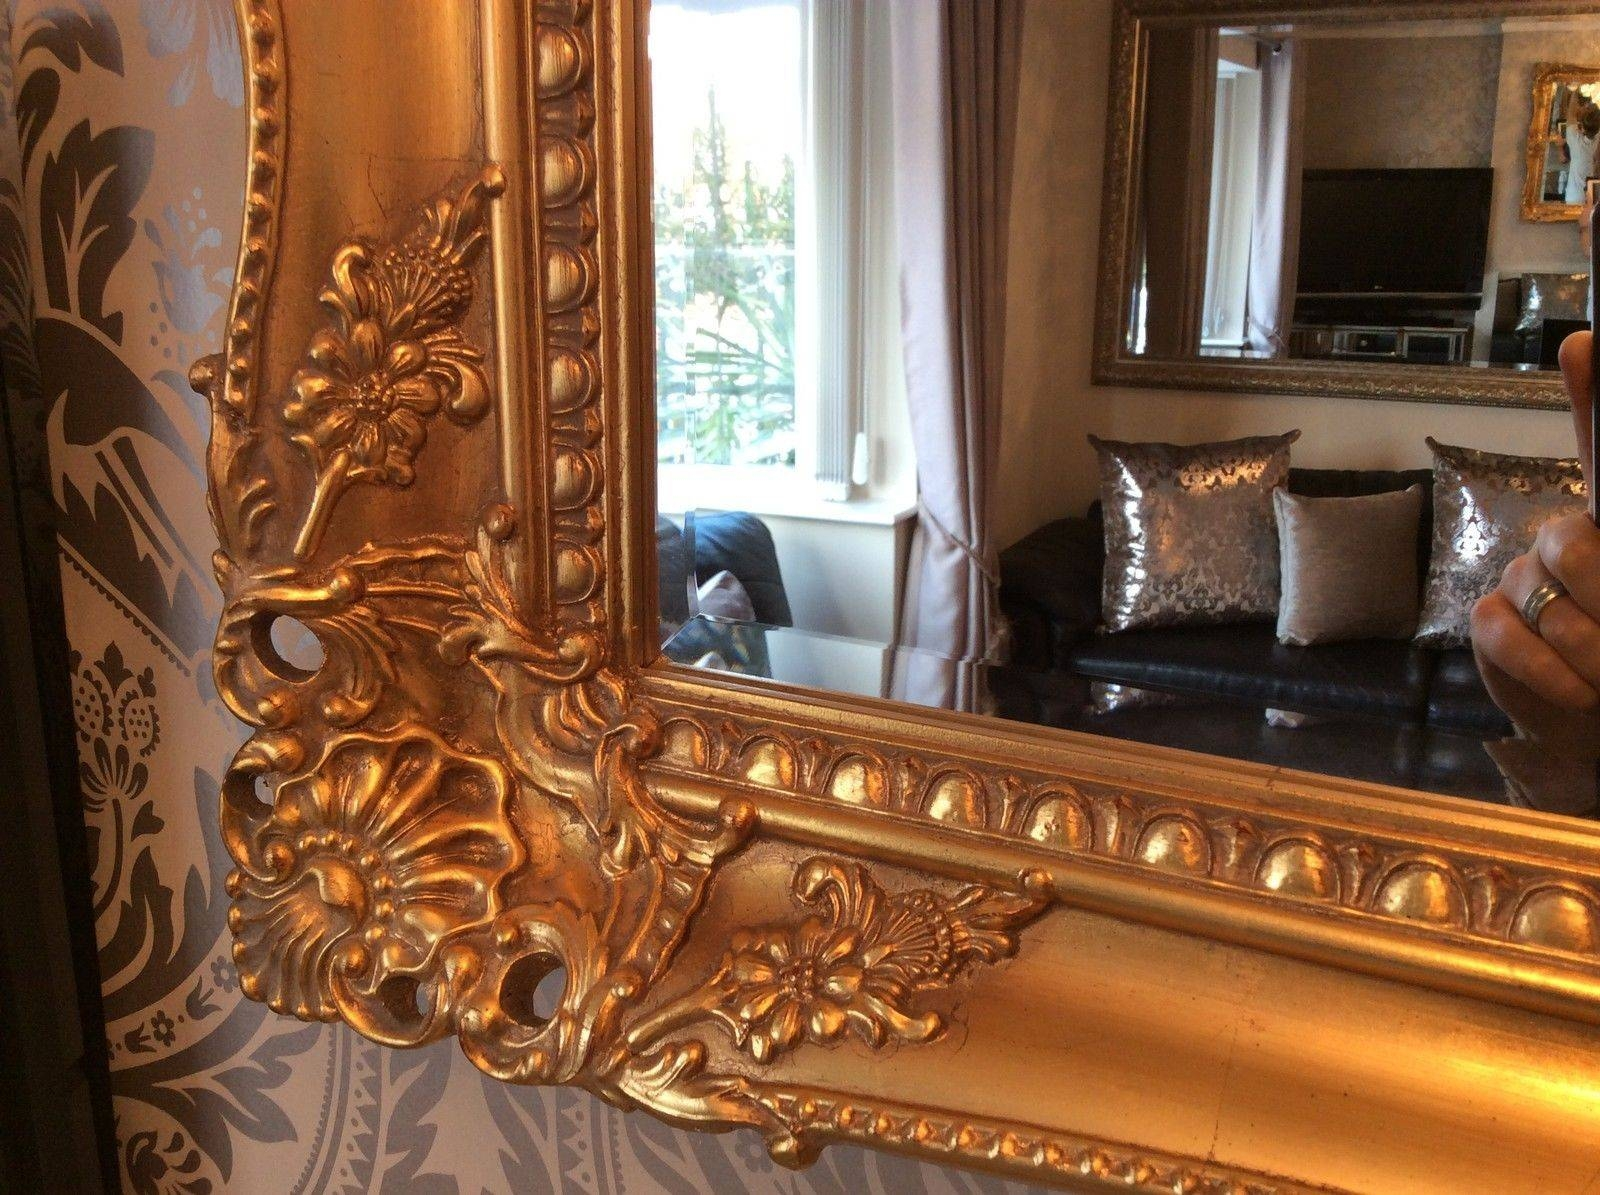 Large Antique Gold Shabby Chic Ornate Decorative Wall Mirror Free Pertaining To Large Gold Ornate Mirrors (View 7 of 15)